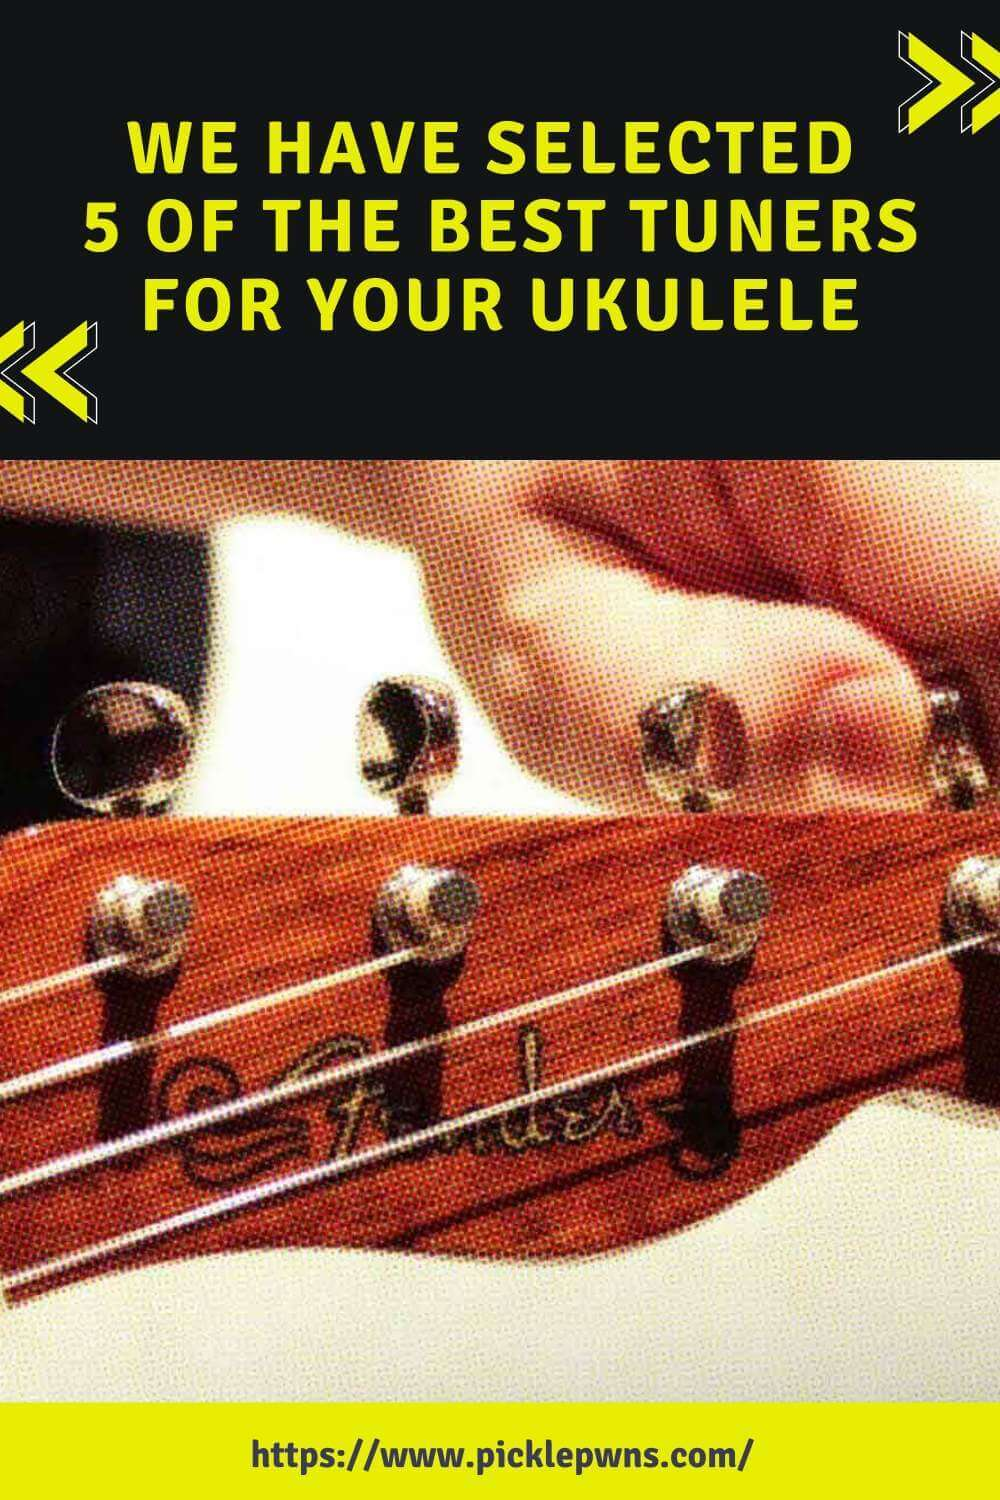 We Have Selected 5 Tuners for Your Ukulele